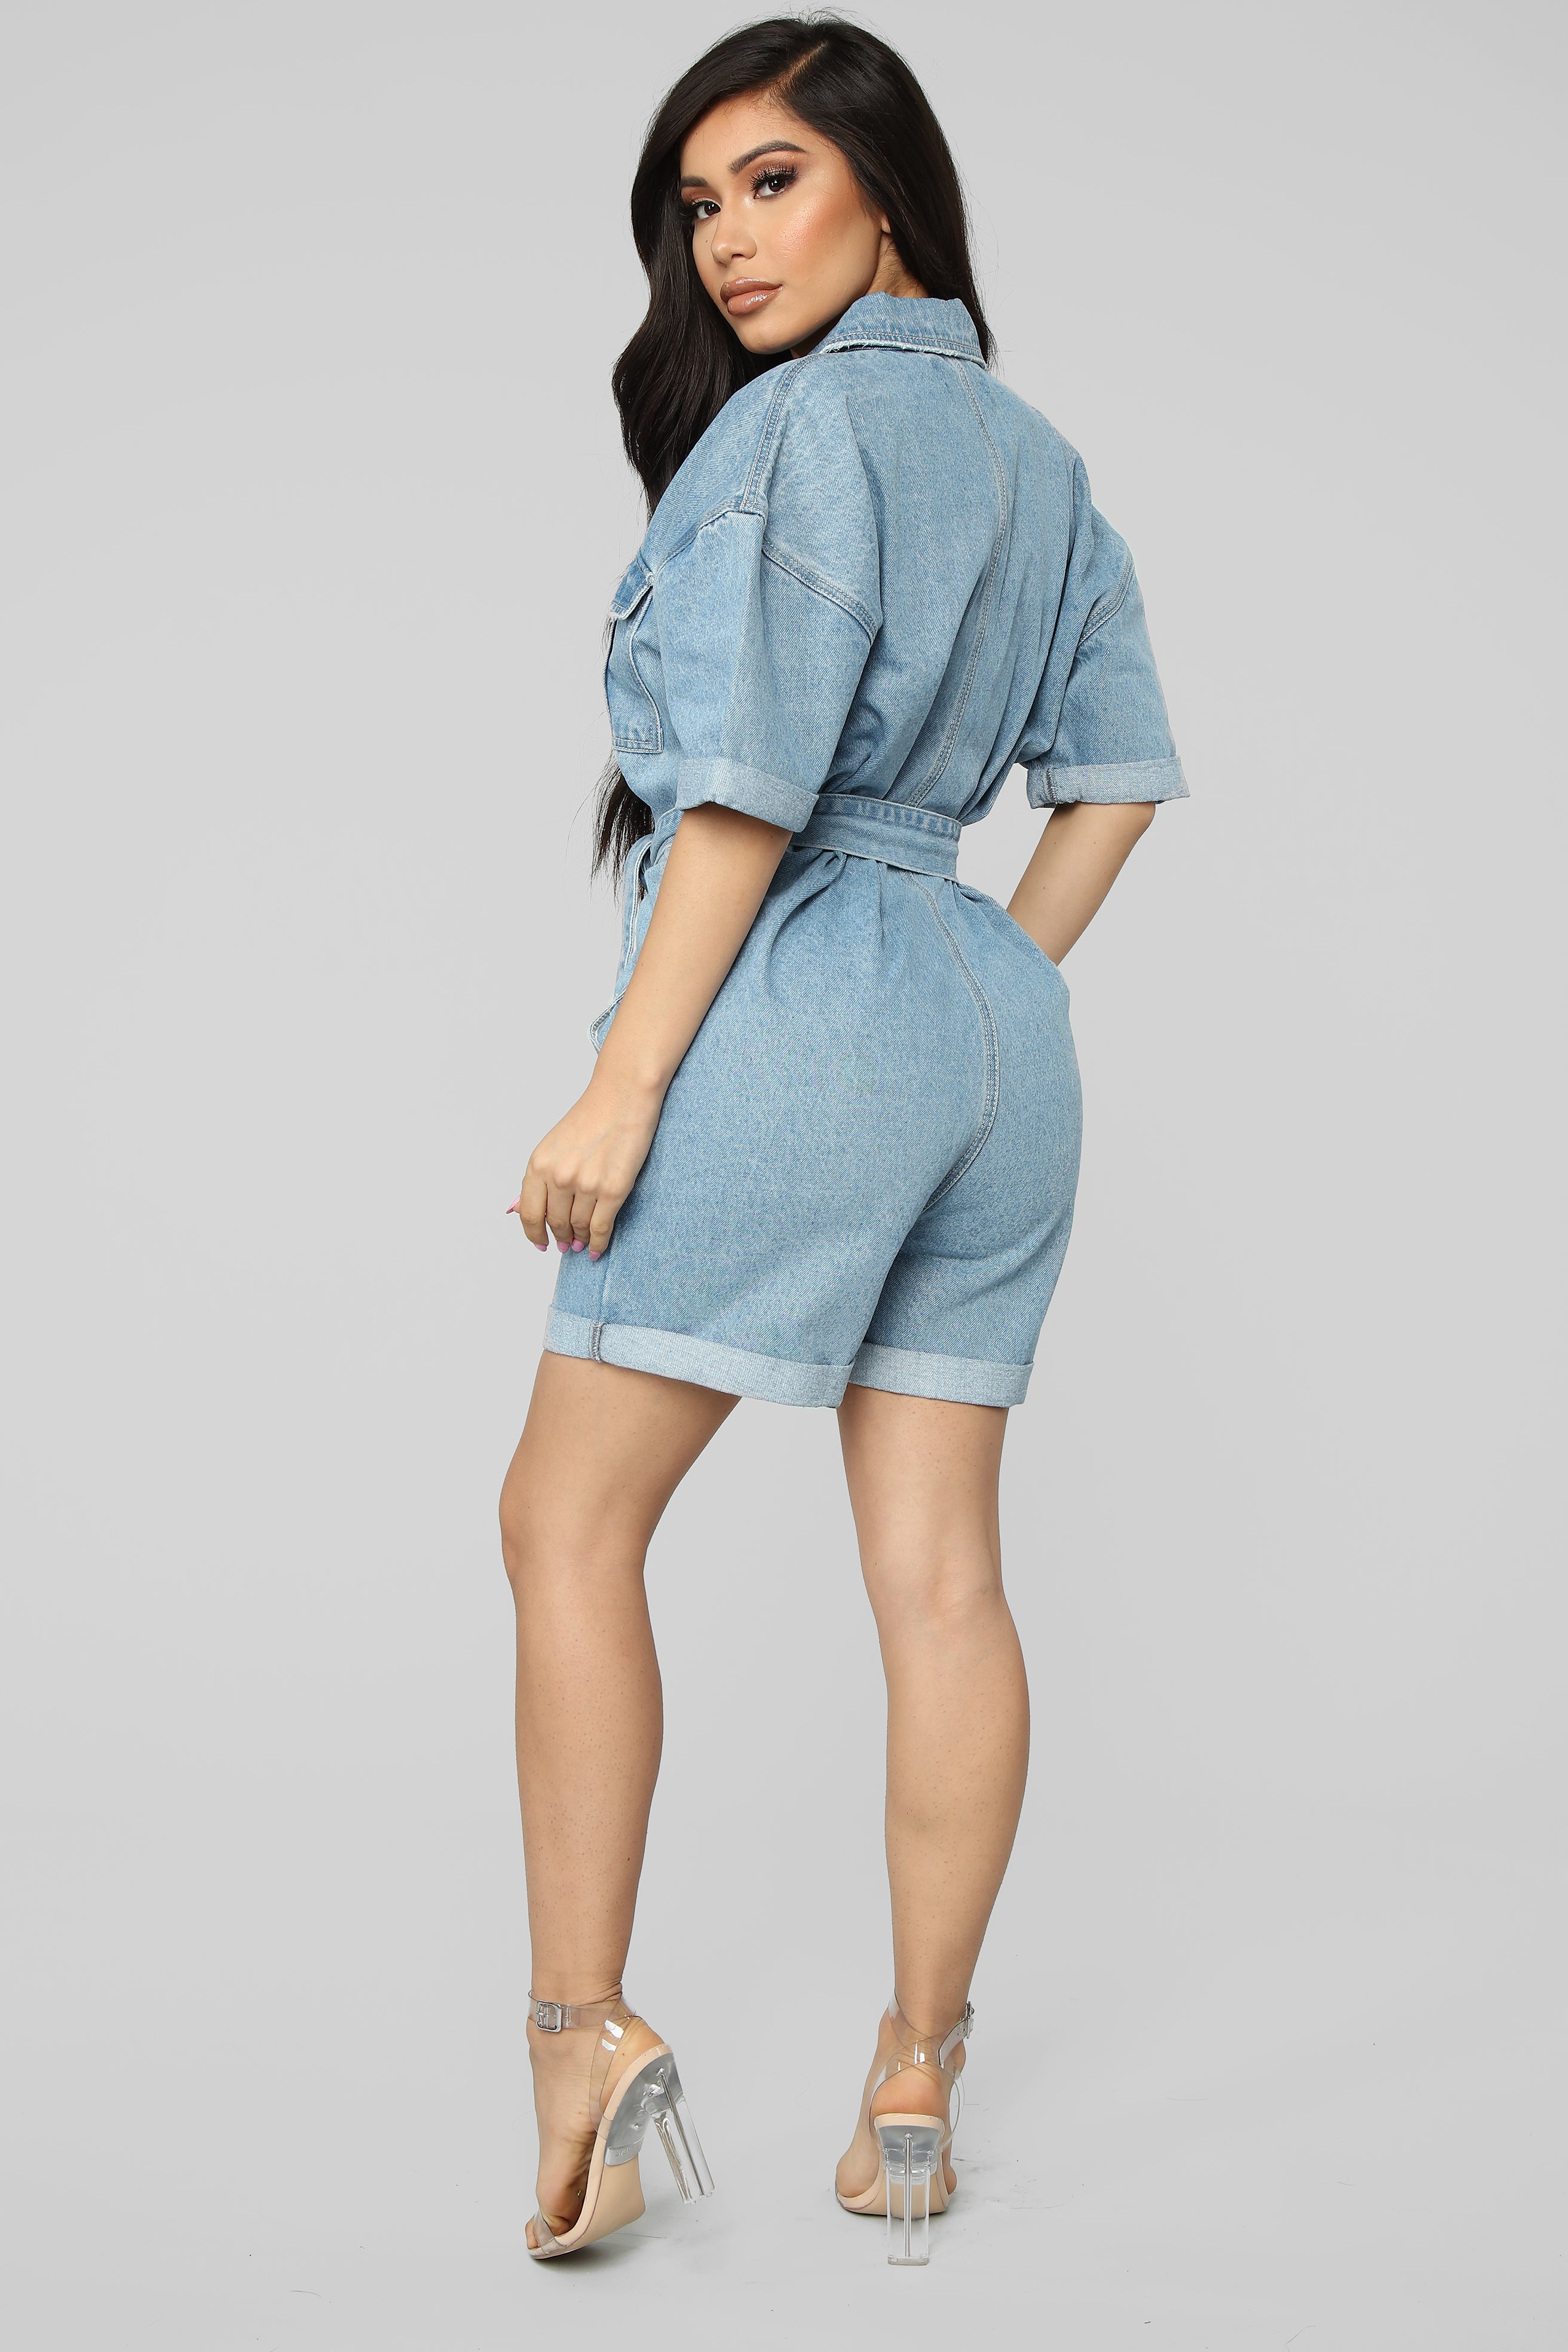 b05a313bf0f86 The Whole Package Denim Romper - Light Wash